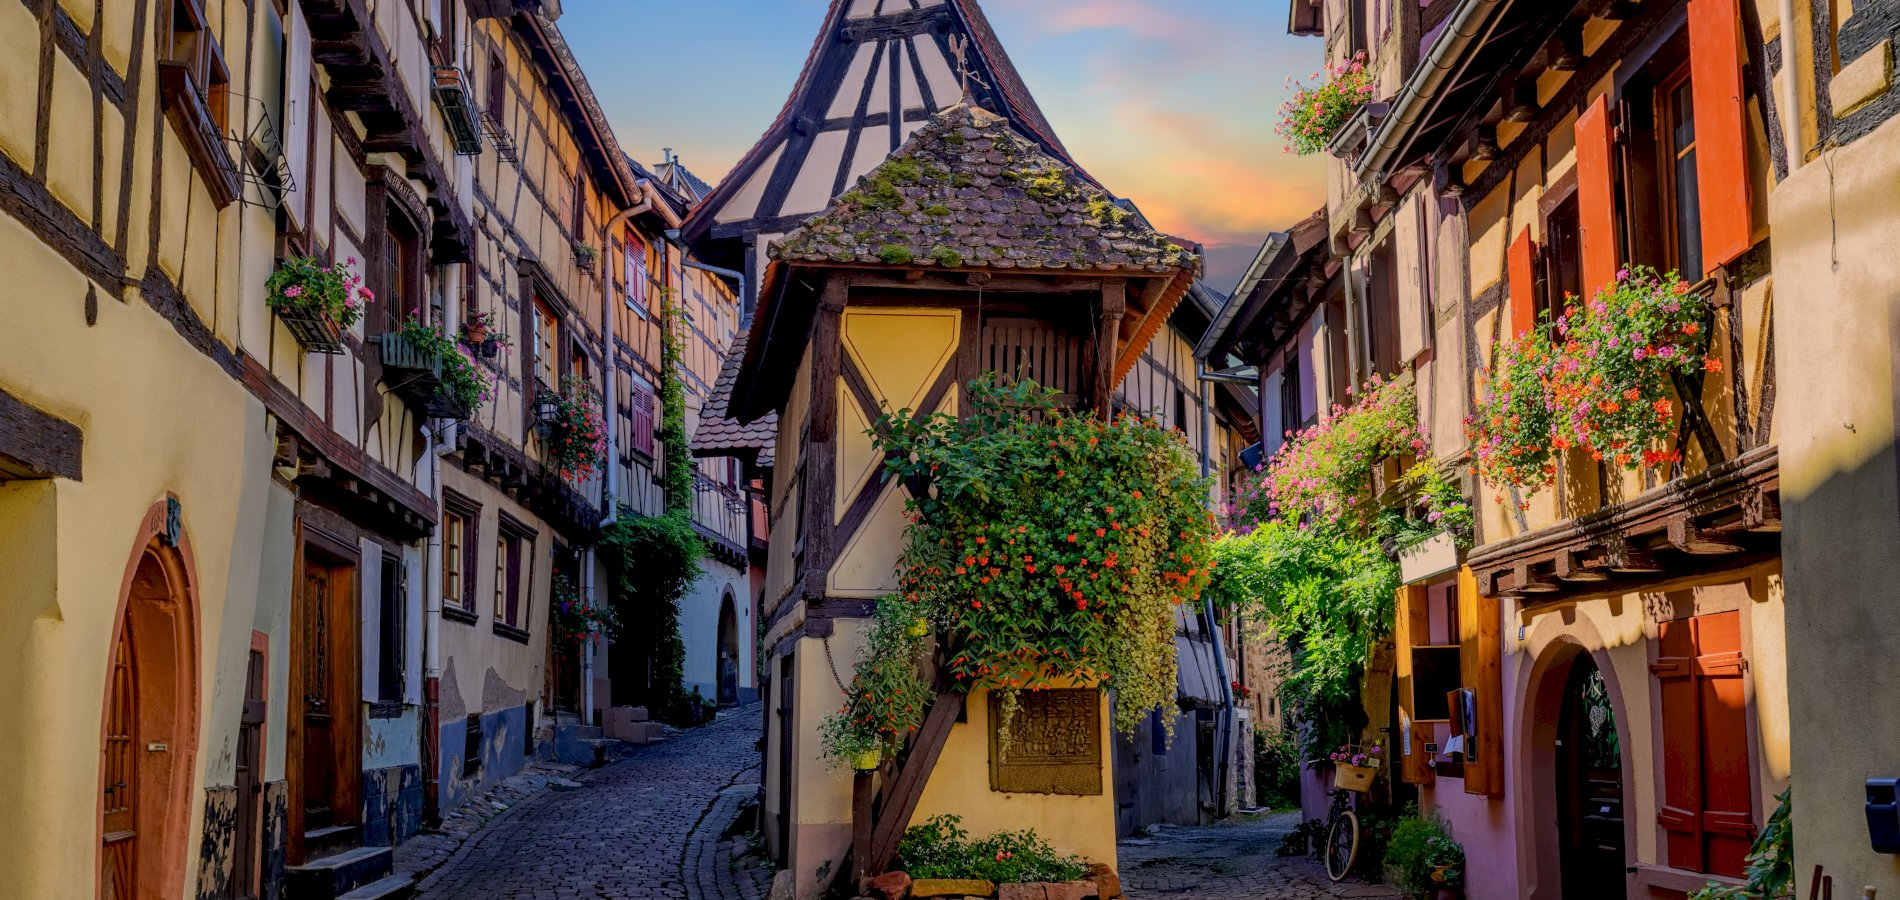 Ophorus Tours - 5 Days Alsace Private Travel Package - 3* Hotel Option